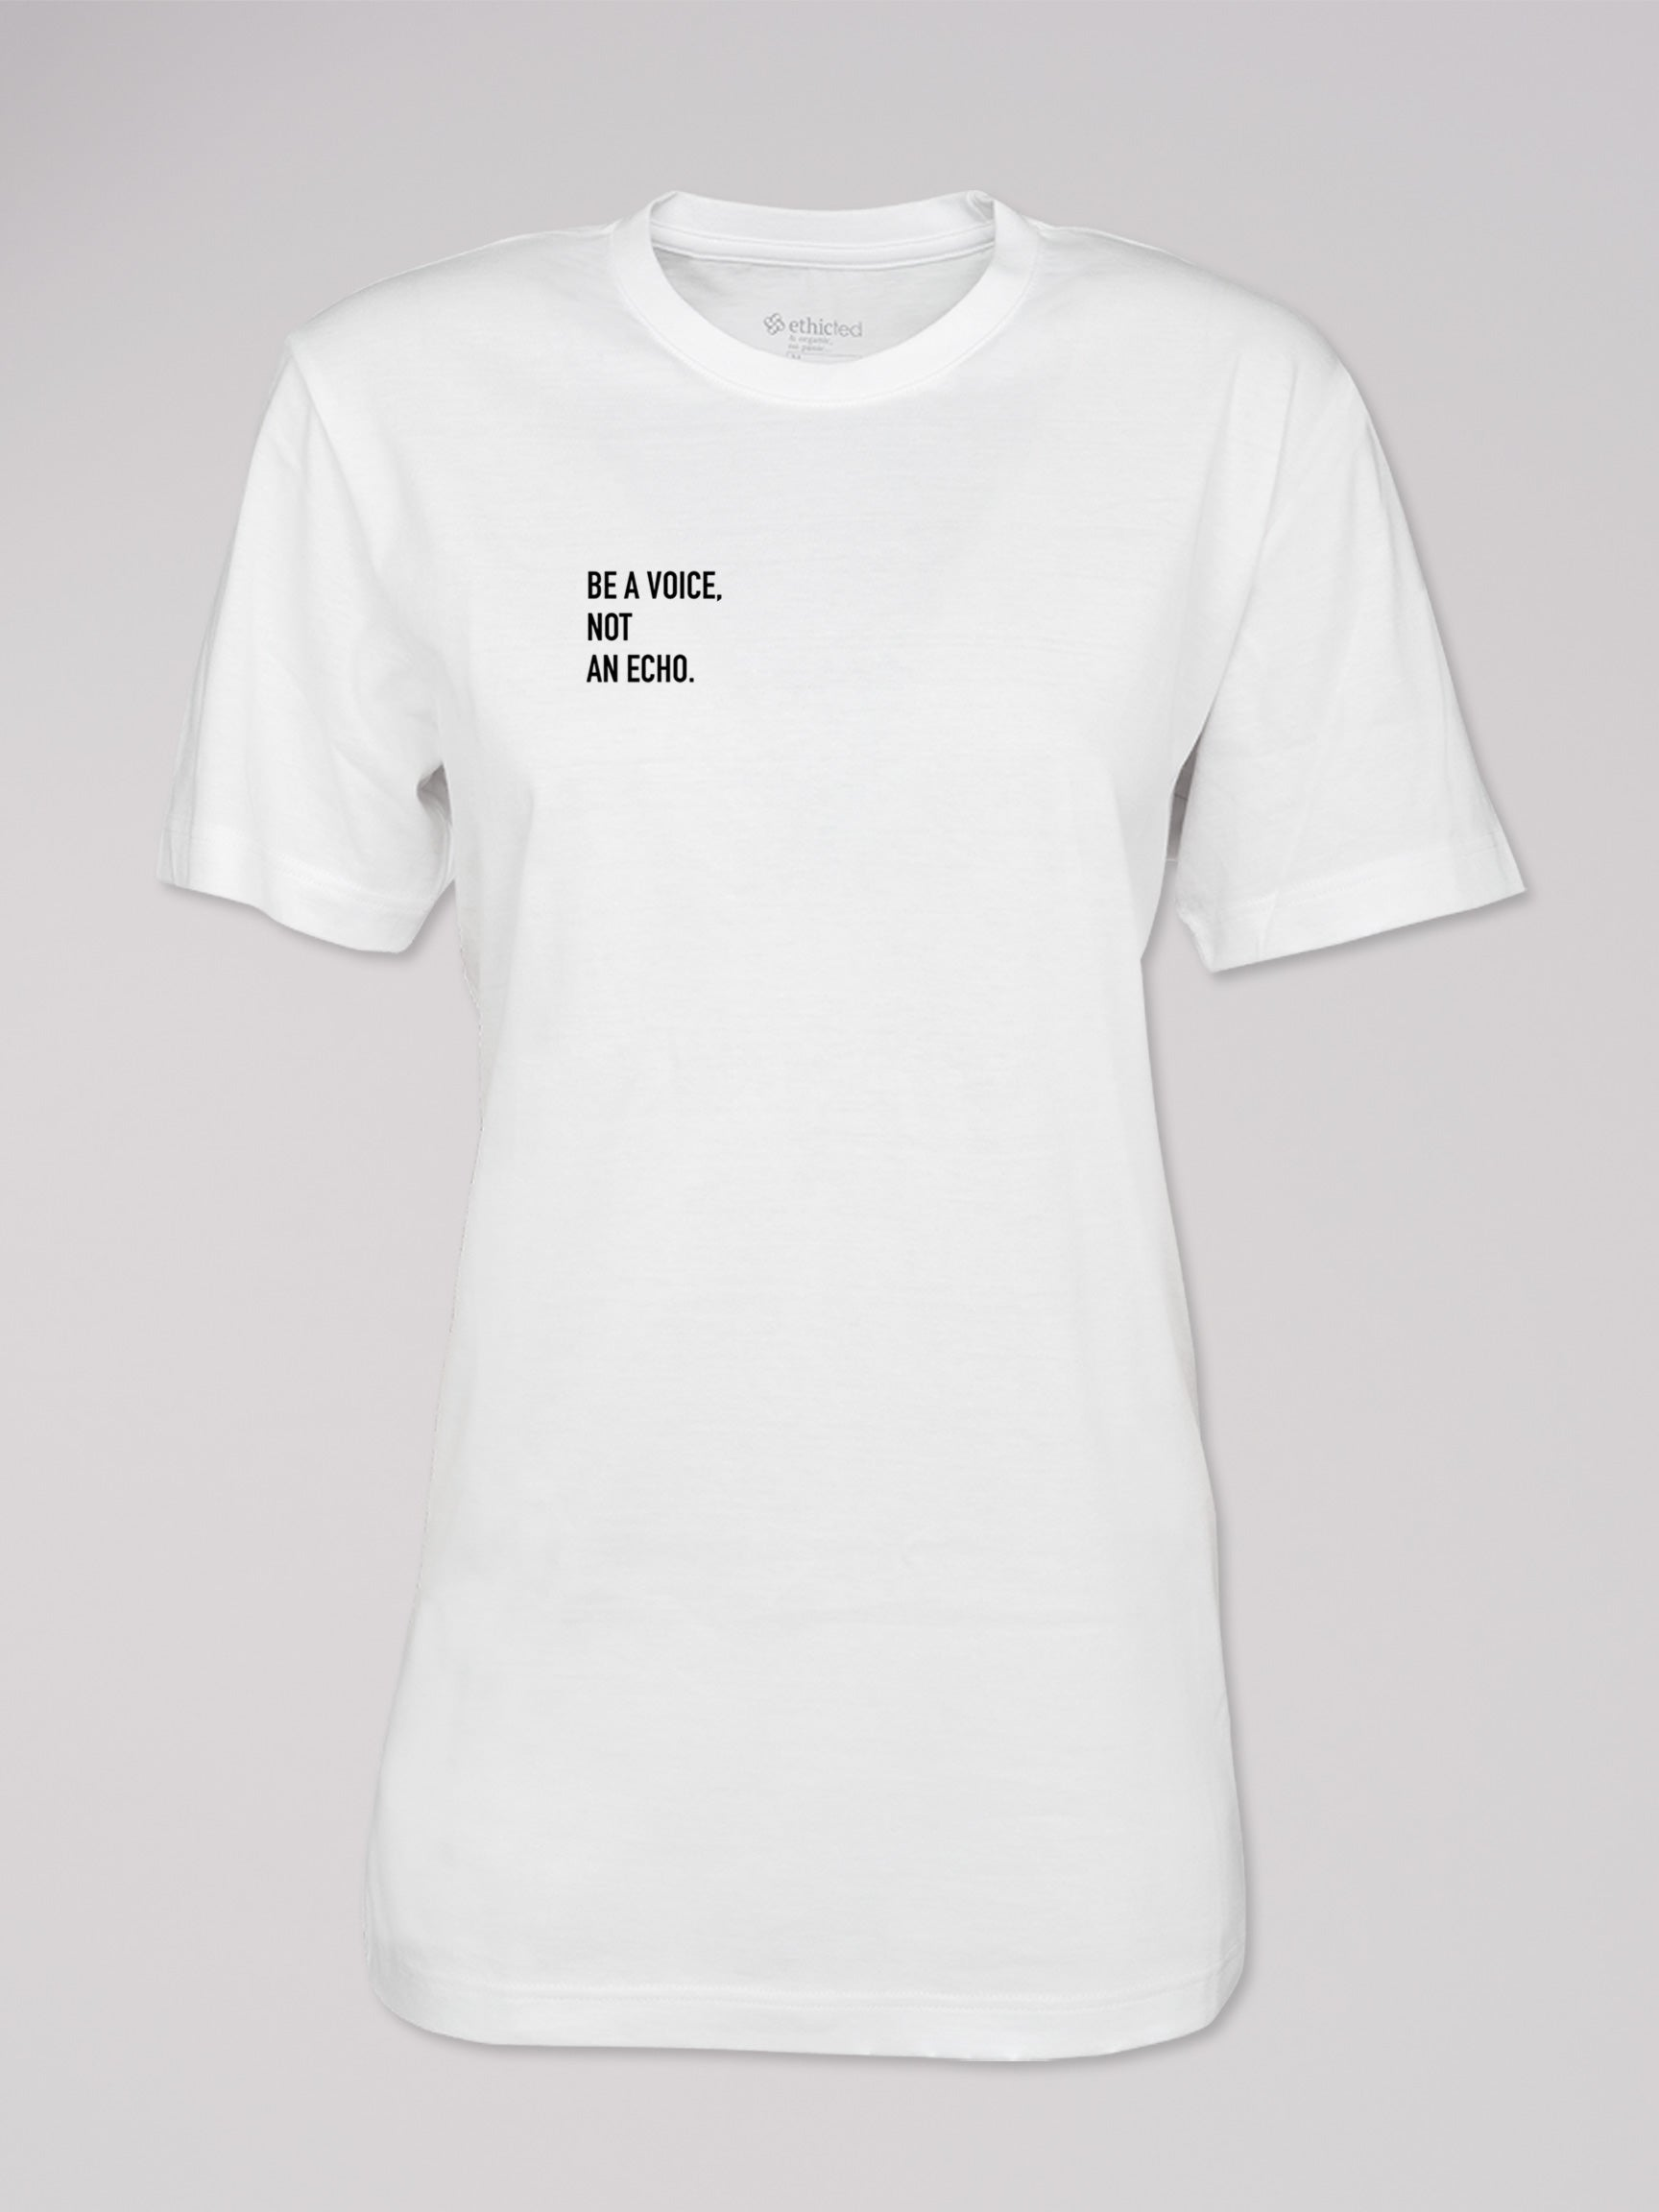 "T-Shirt Heshima mit Text ""Be a Voice. Not an Echo."" von ethicted in weiß."